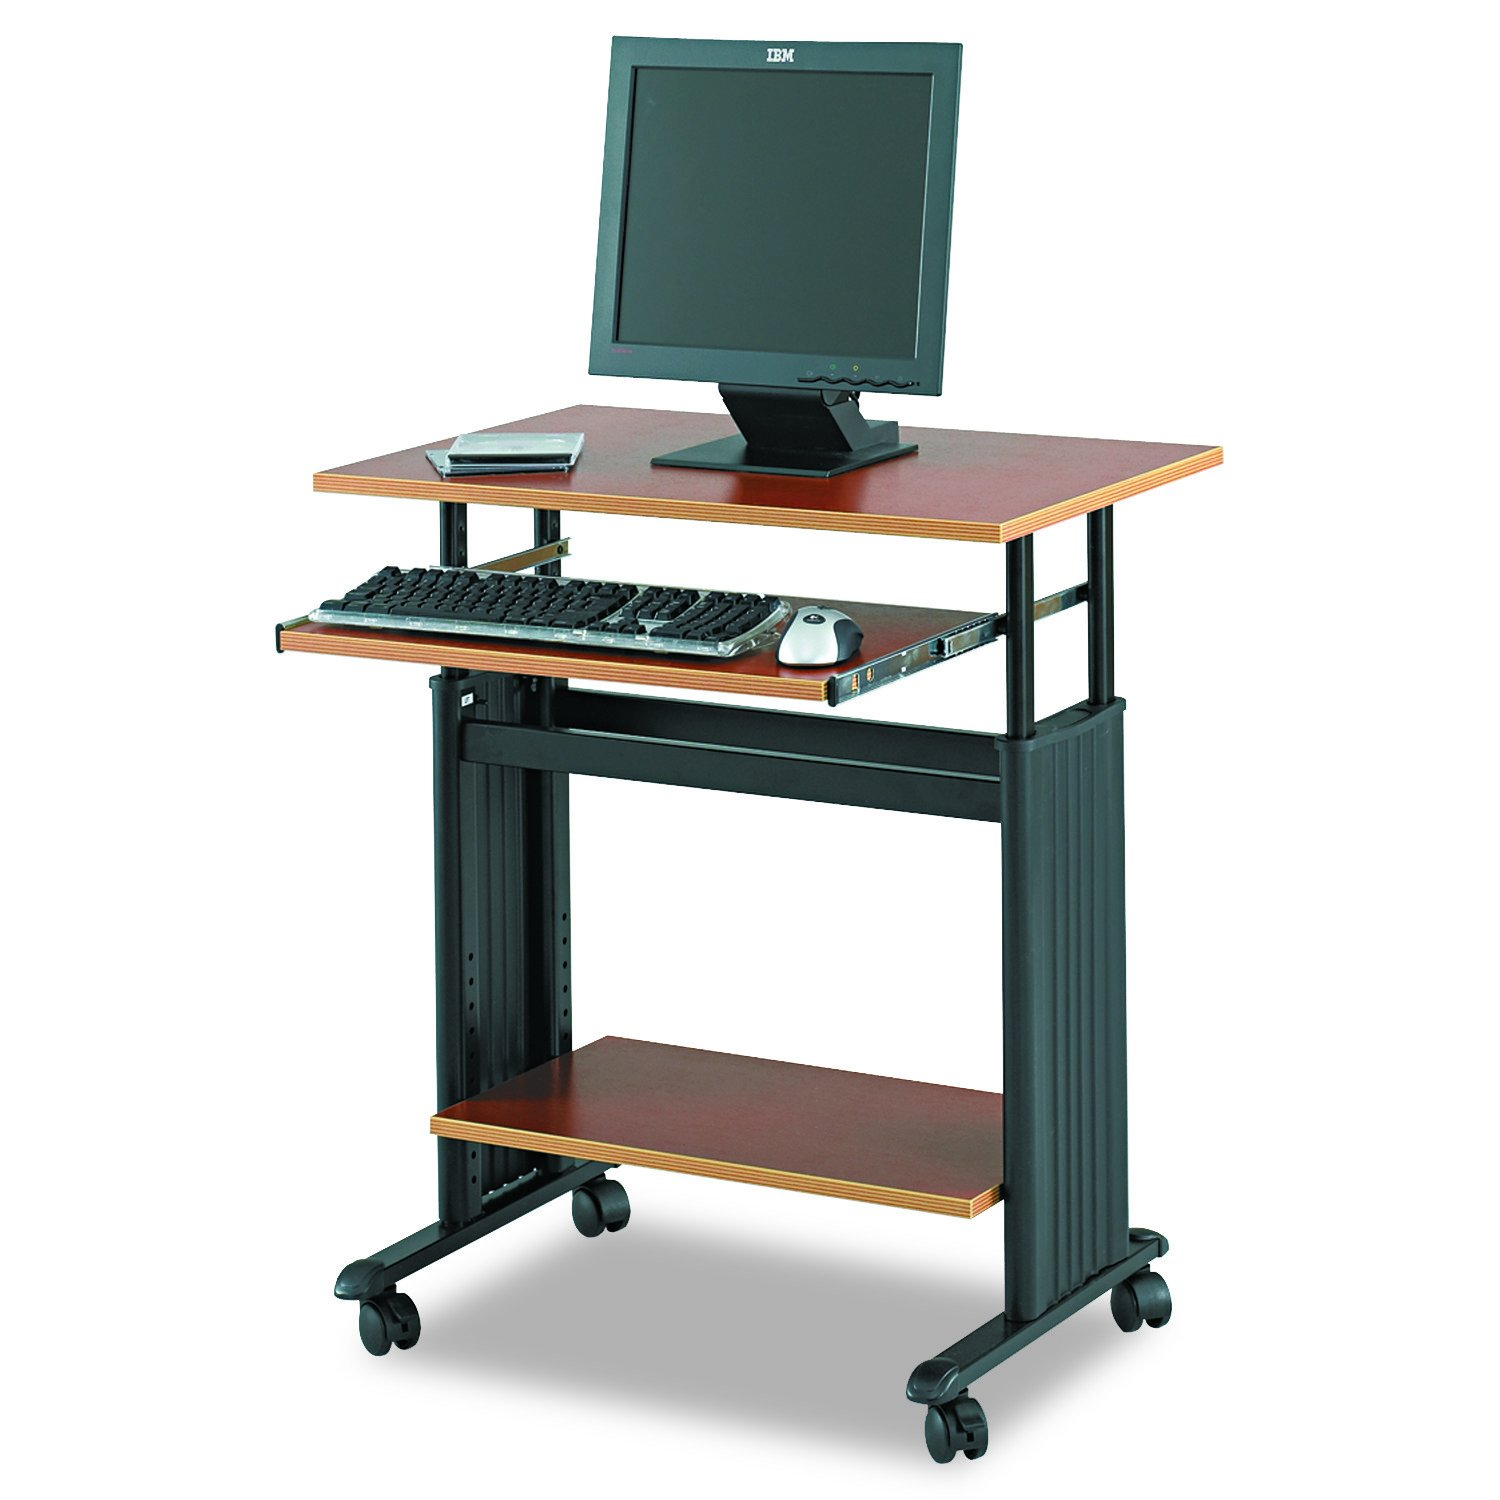 Safco Products 1925CY Muv Adjustable-Height Desk, Cherry